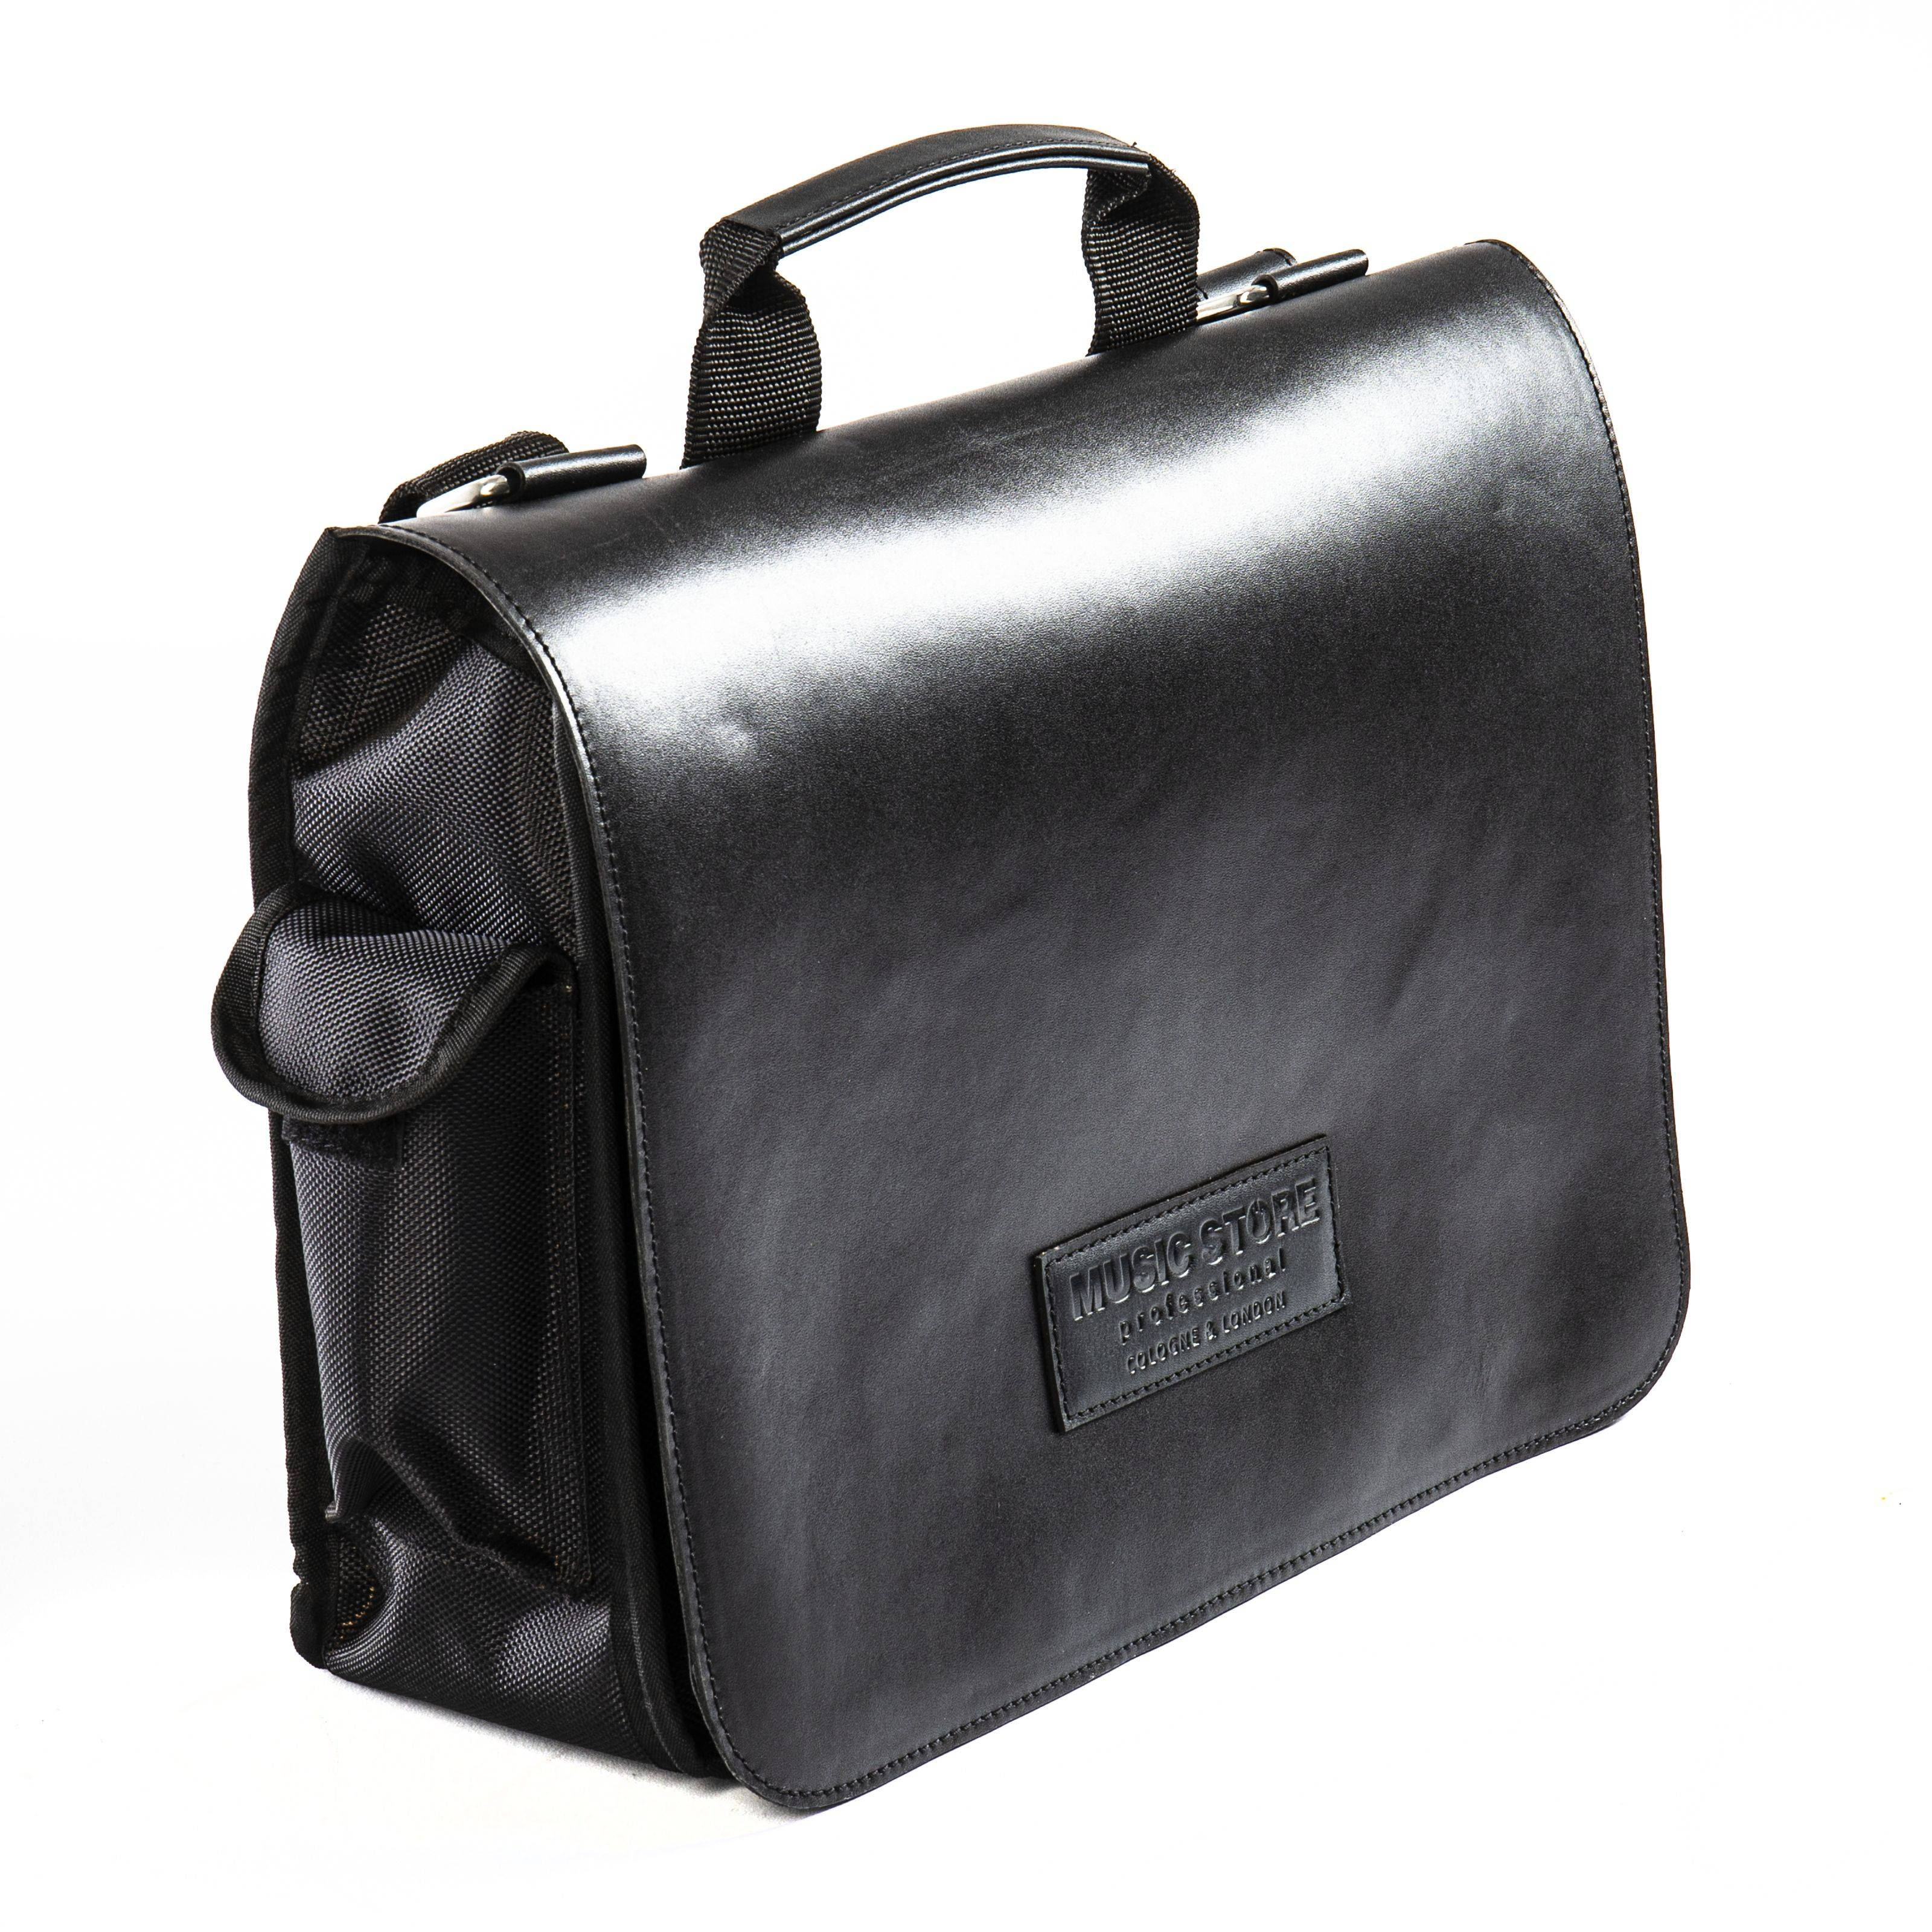 MUSIC STORE Executive Bag,w.front Leather, black, embo. logo